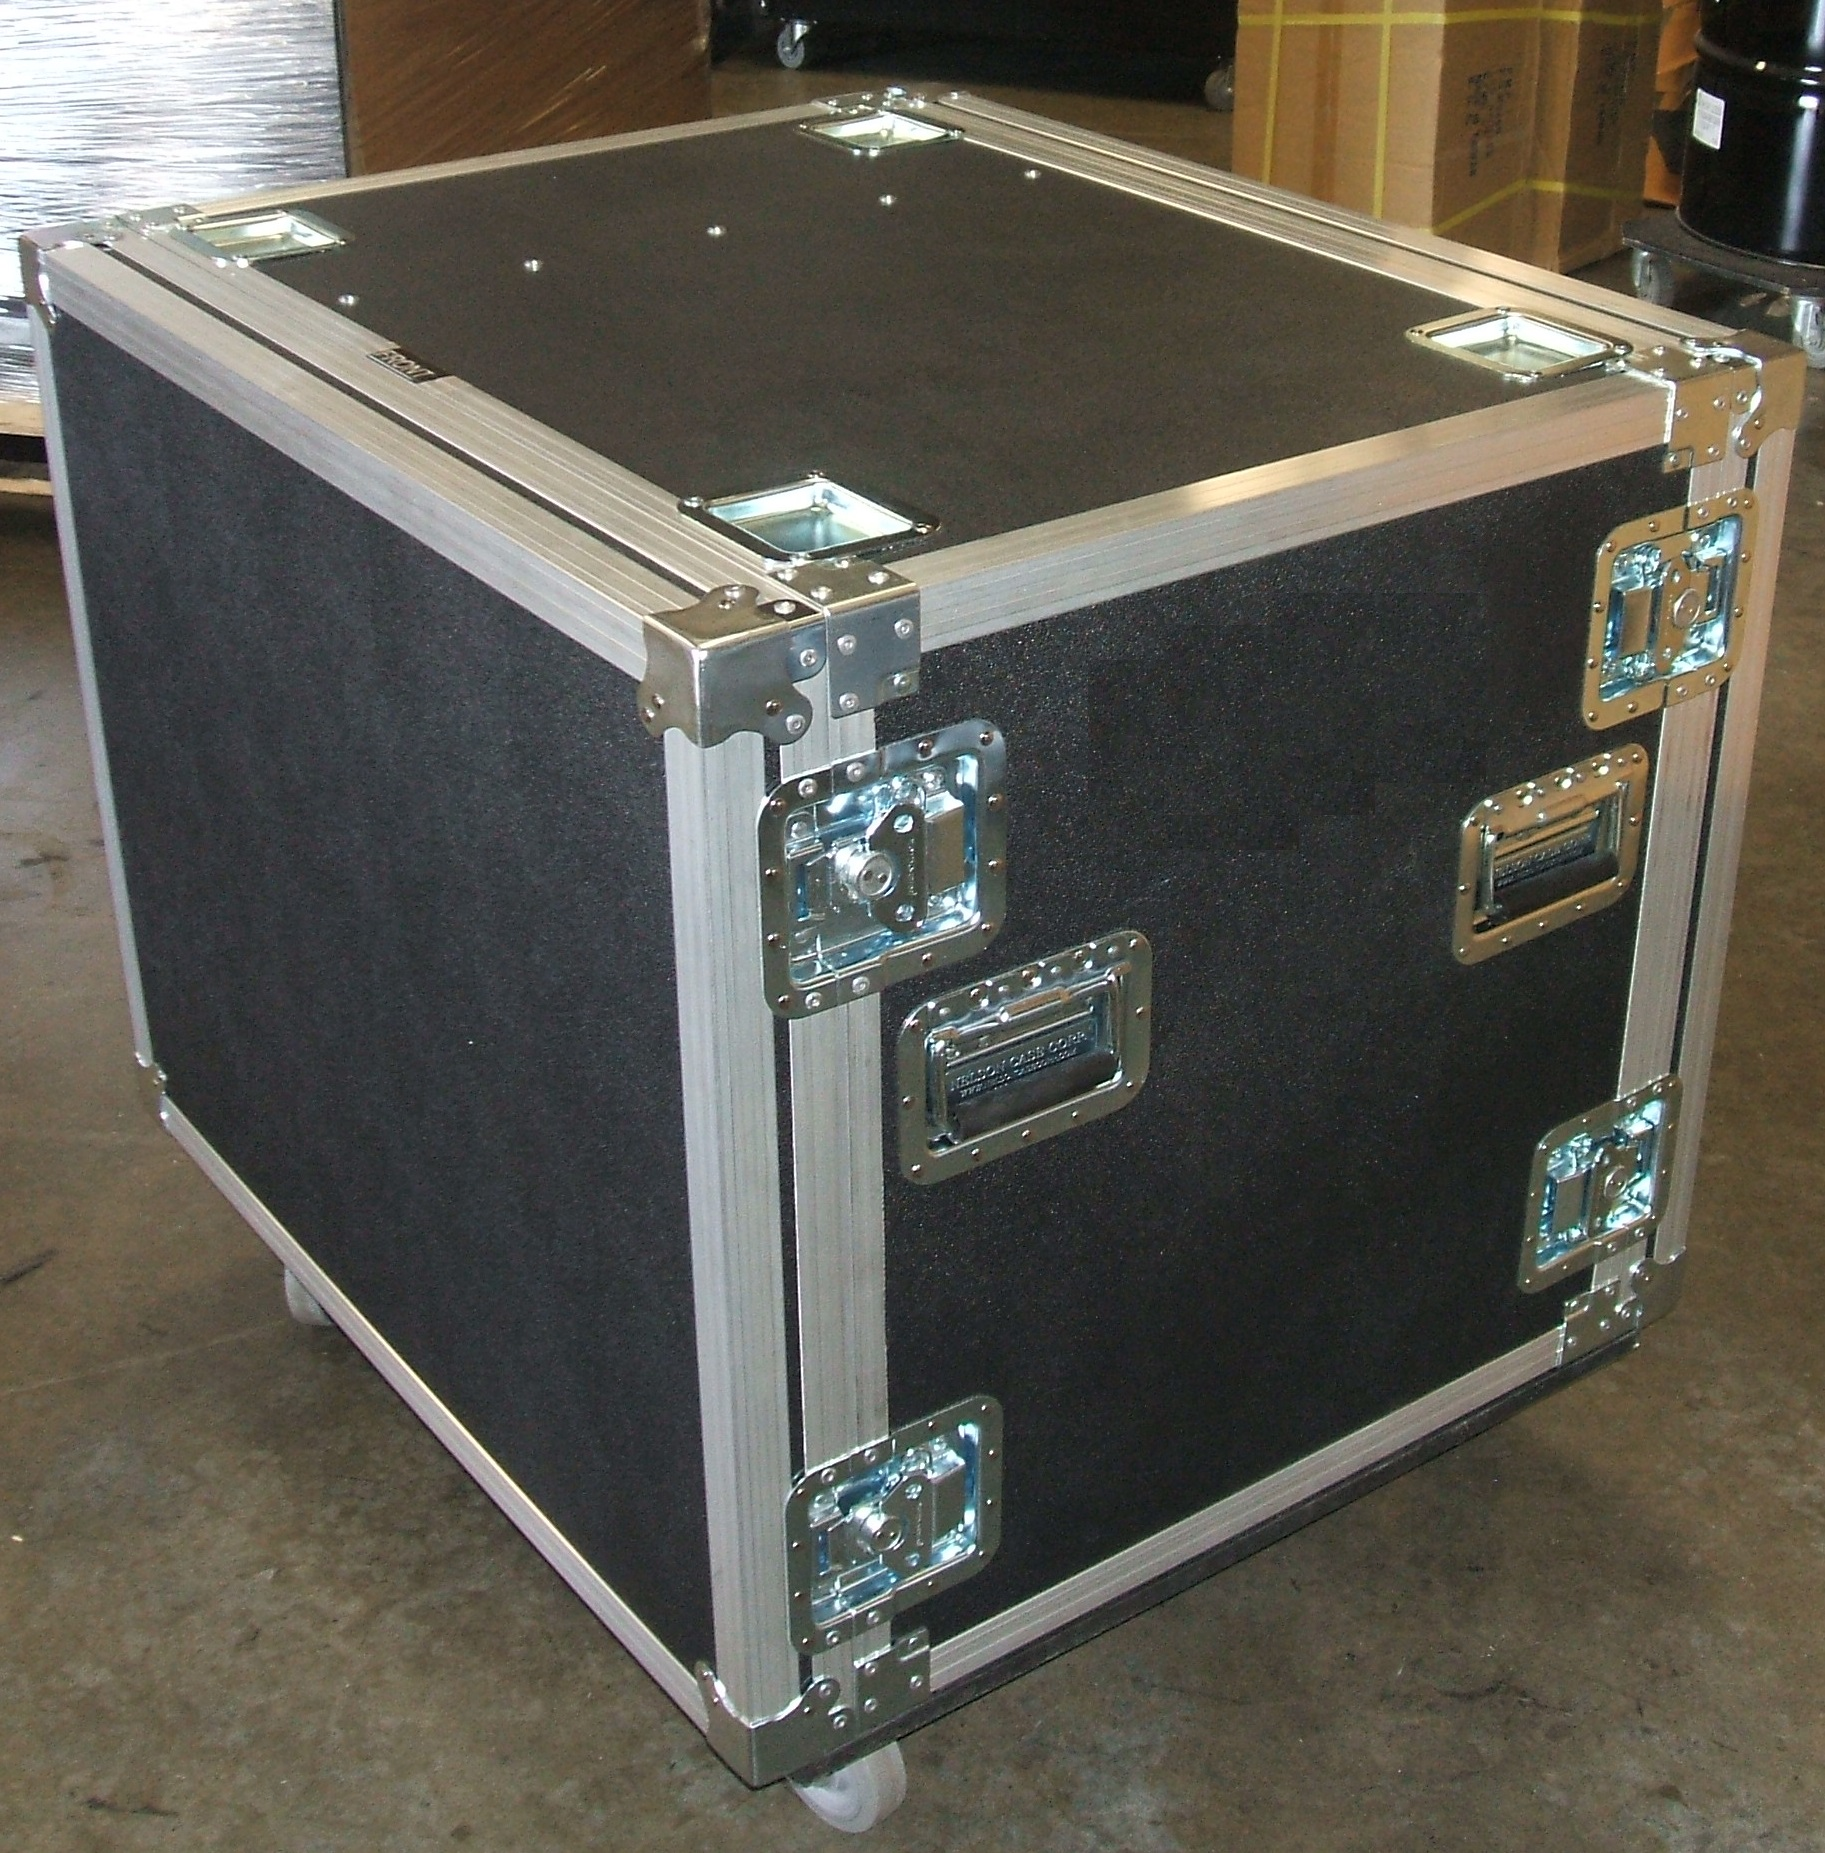 Print # 5676 - Custom 12RU Shock Rack which includes side compartment for (1) Dell XPS 8500 Computer Which Includes Heavy Duty Hardware, Heavy Duty Double Angle Aluminum Extrusion, Front and Rear pop Off Lids, 4 Inch Casters, 3/8 Black ABS By Nelson Case Corp